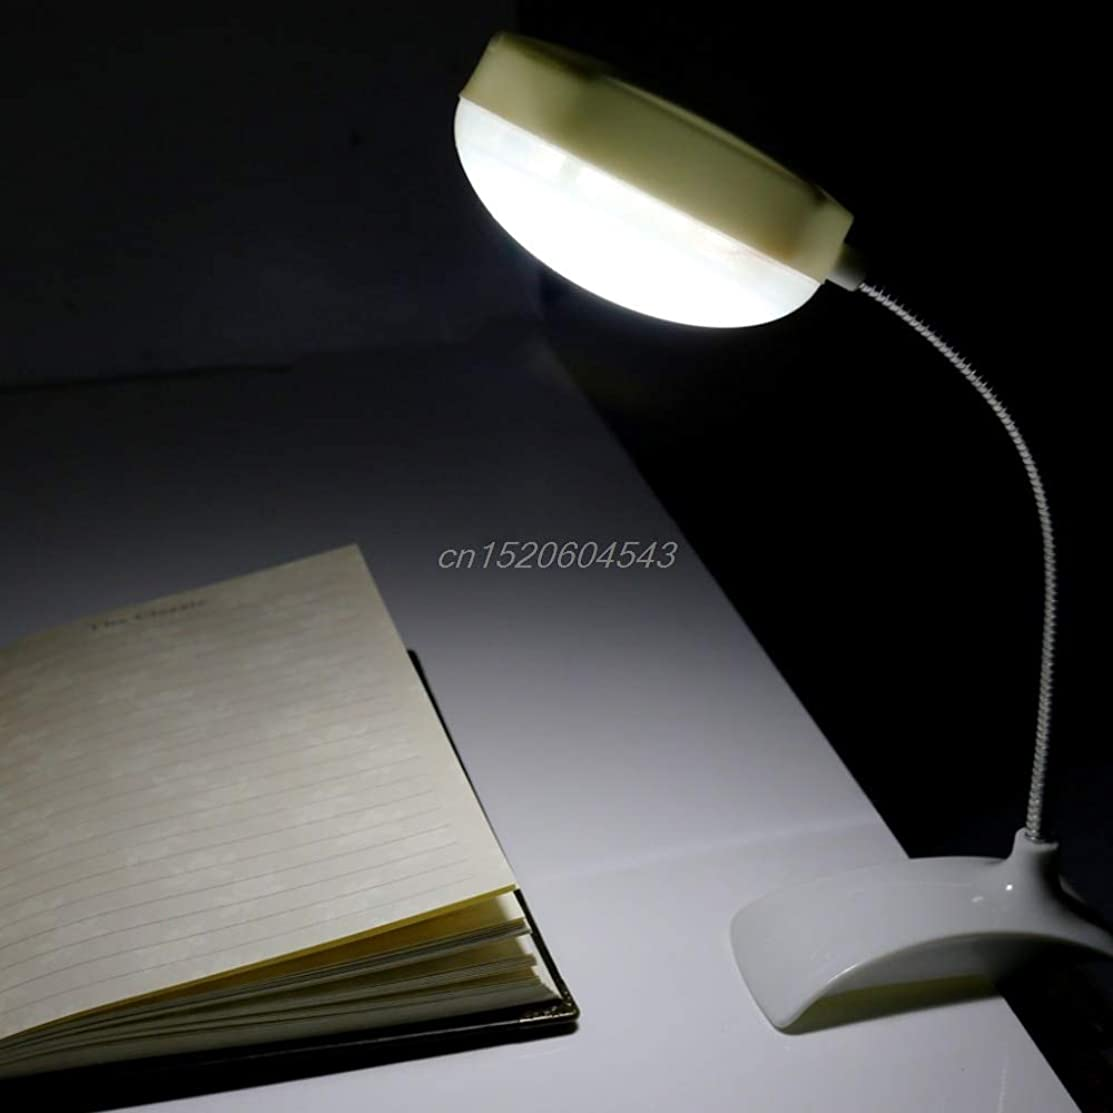 NJPOWER Flexible Clip-on Table Lamp LED Clamp Reading Study Bed Laptop Desk Bright Light New R06 Drop Ship